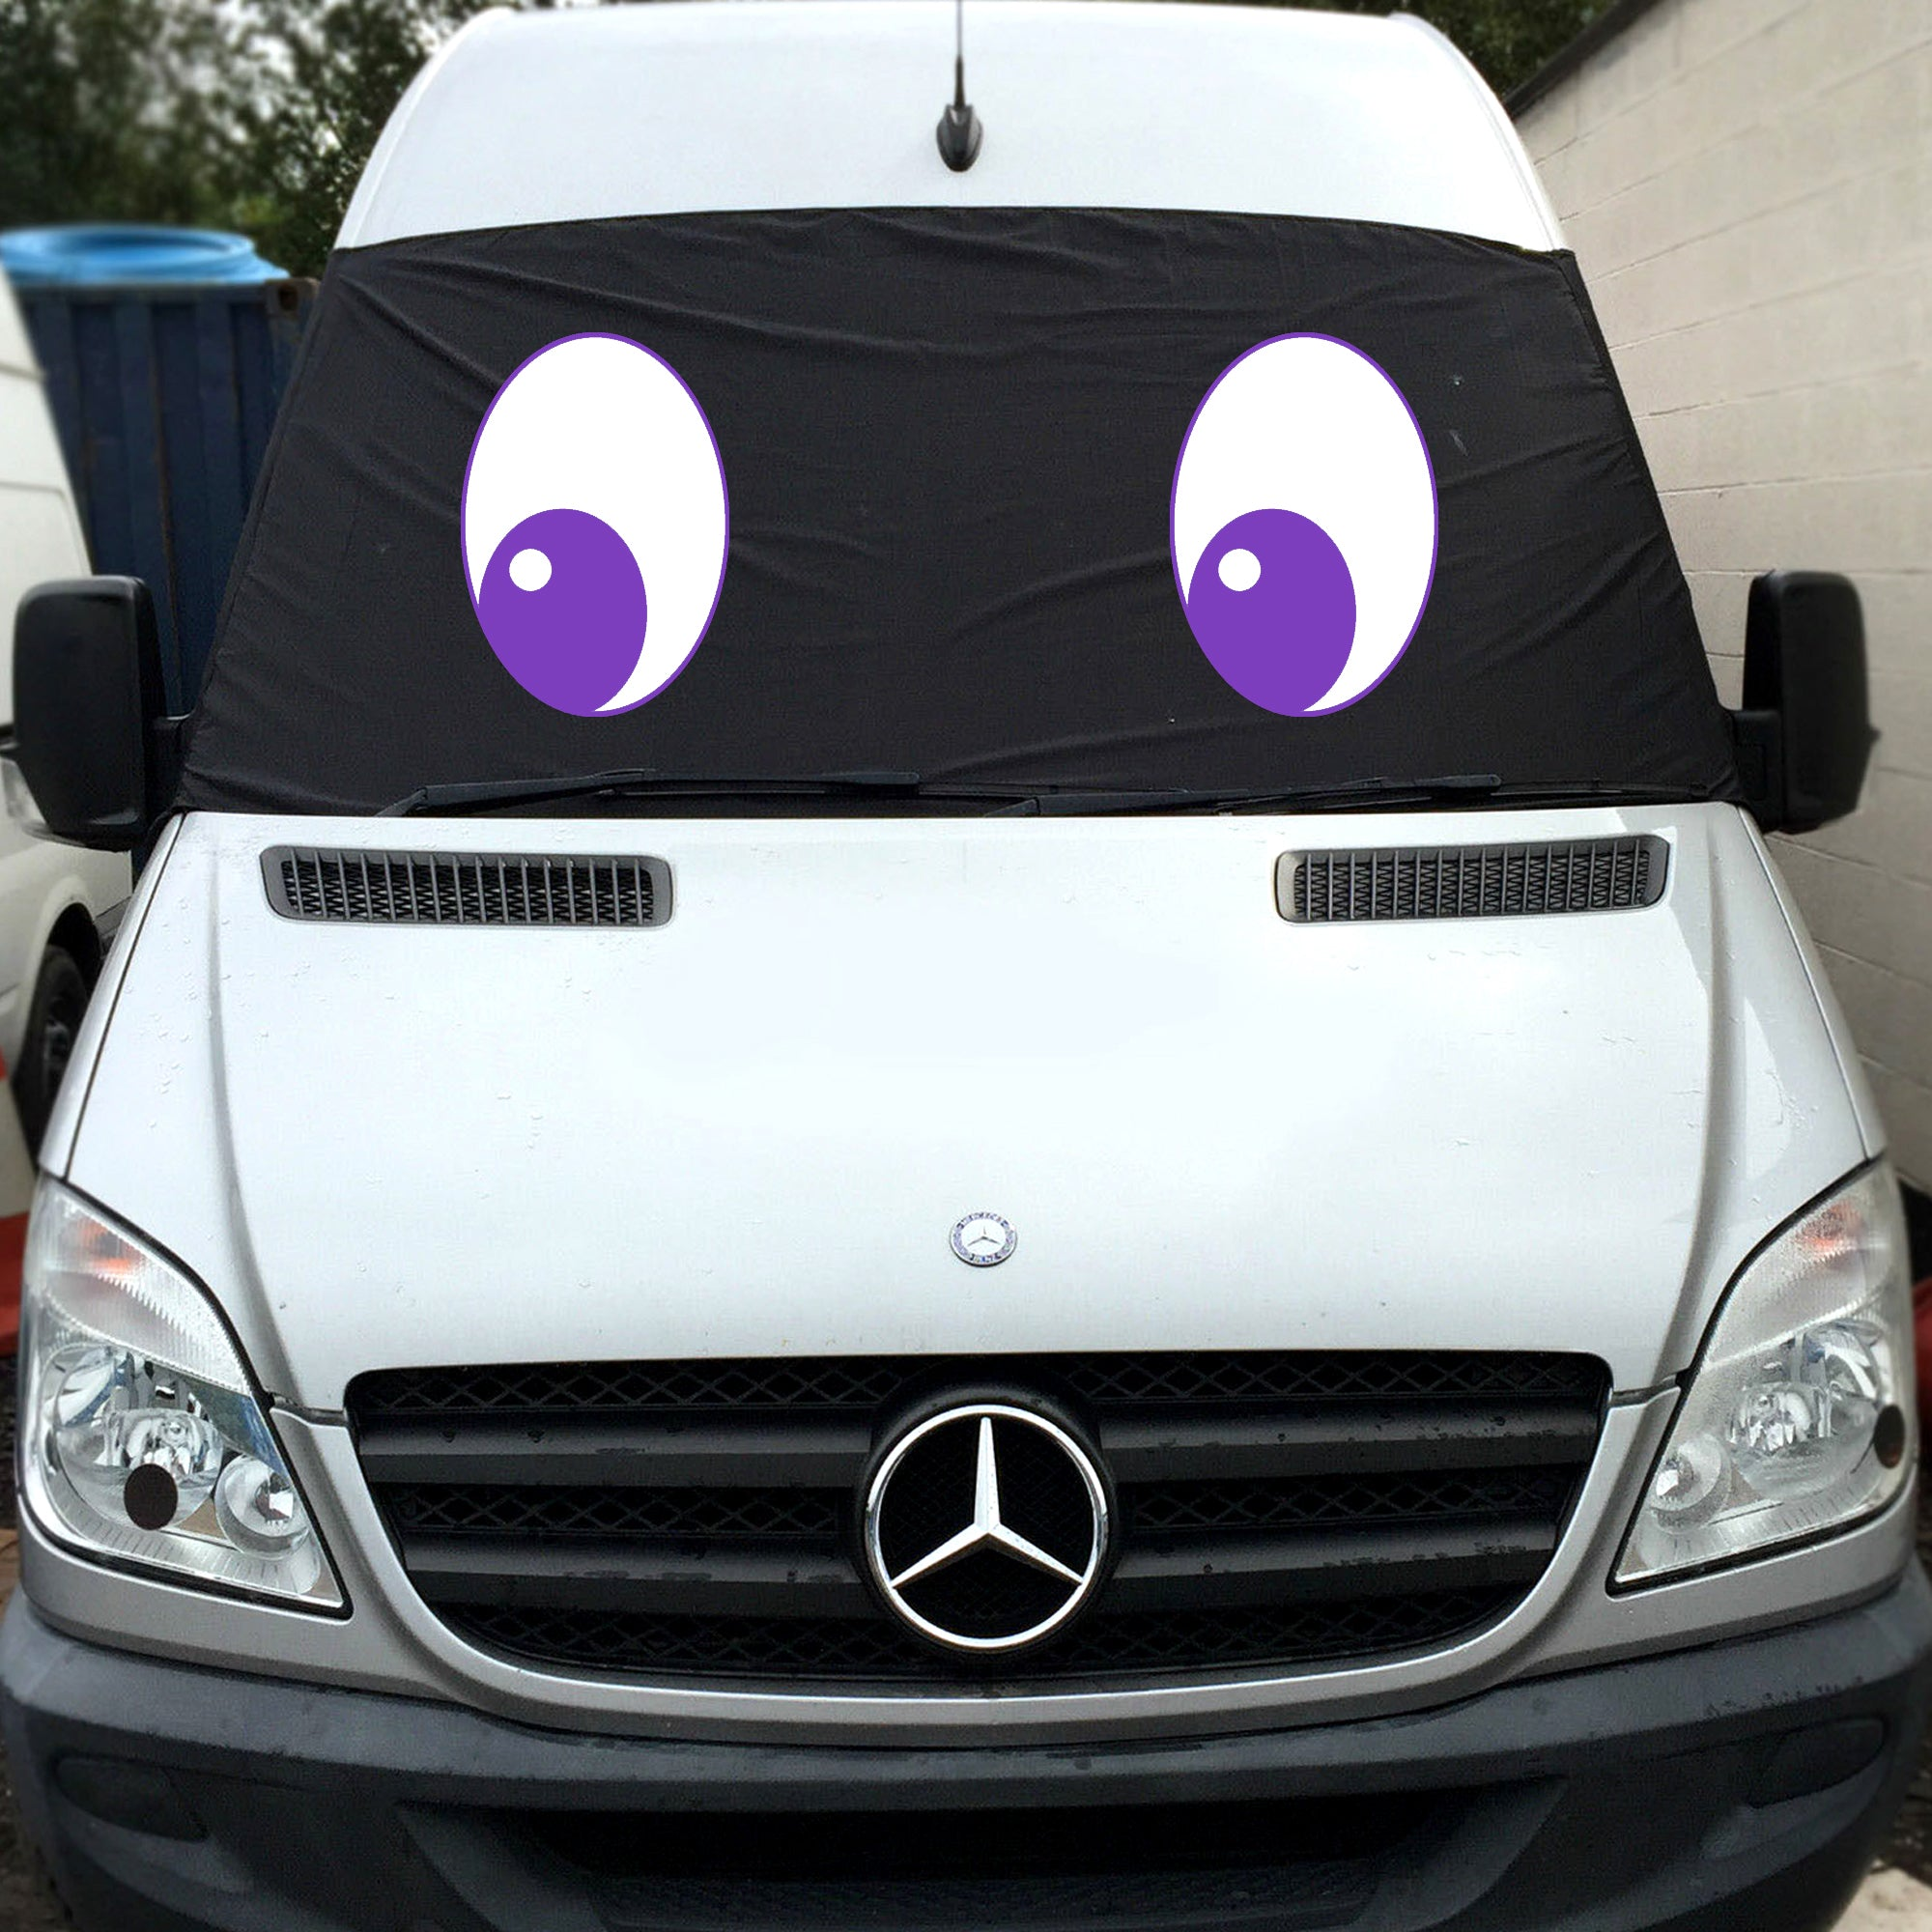 VW Crafter / Mercedes Benz Sprinter (2nd gen) Eyes - Felix